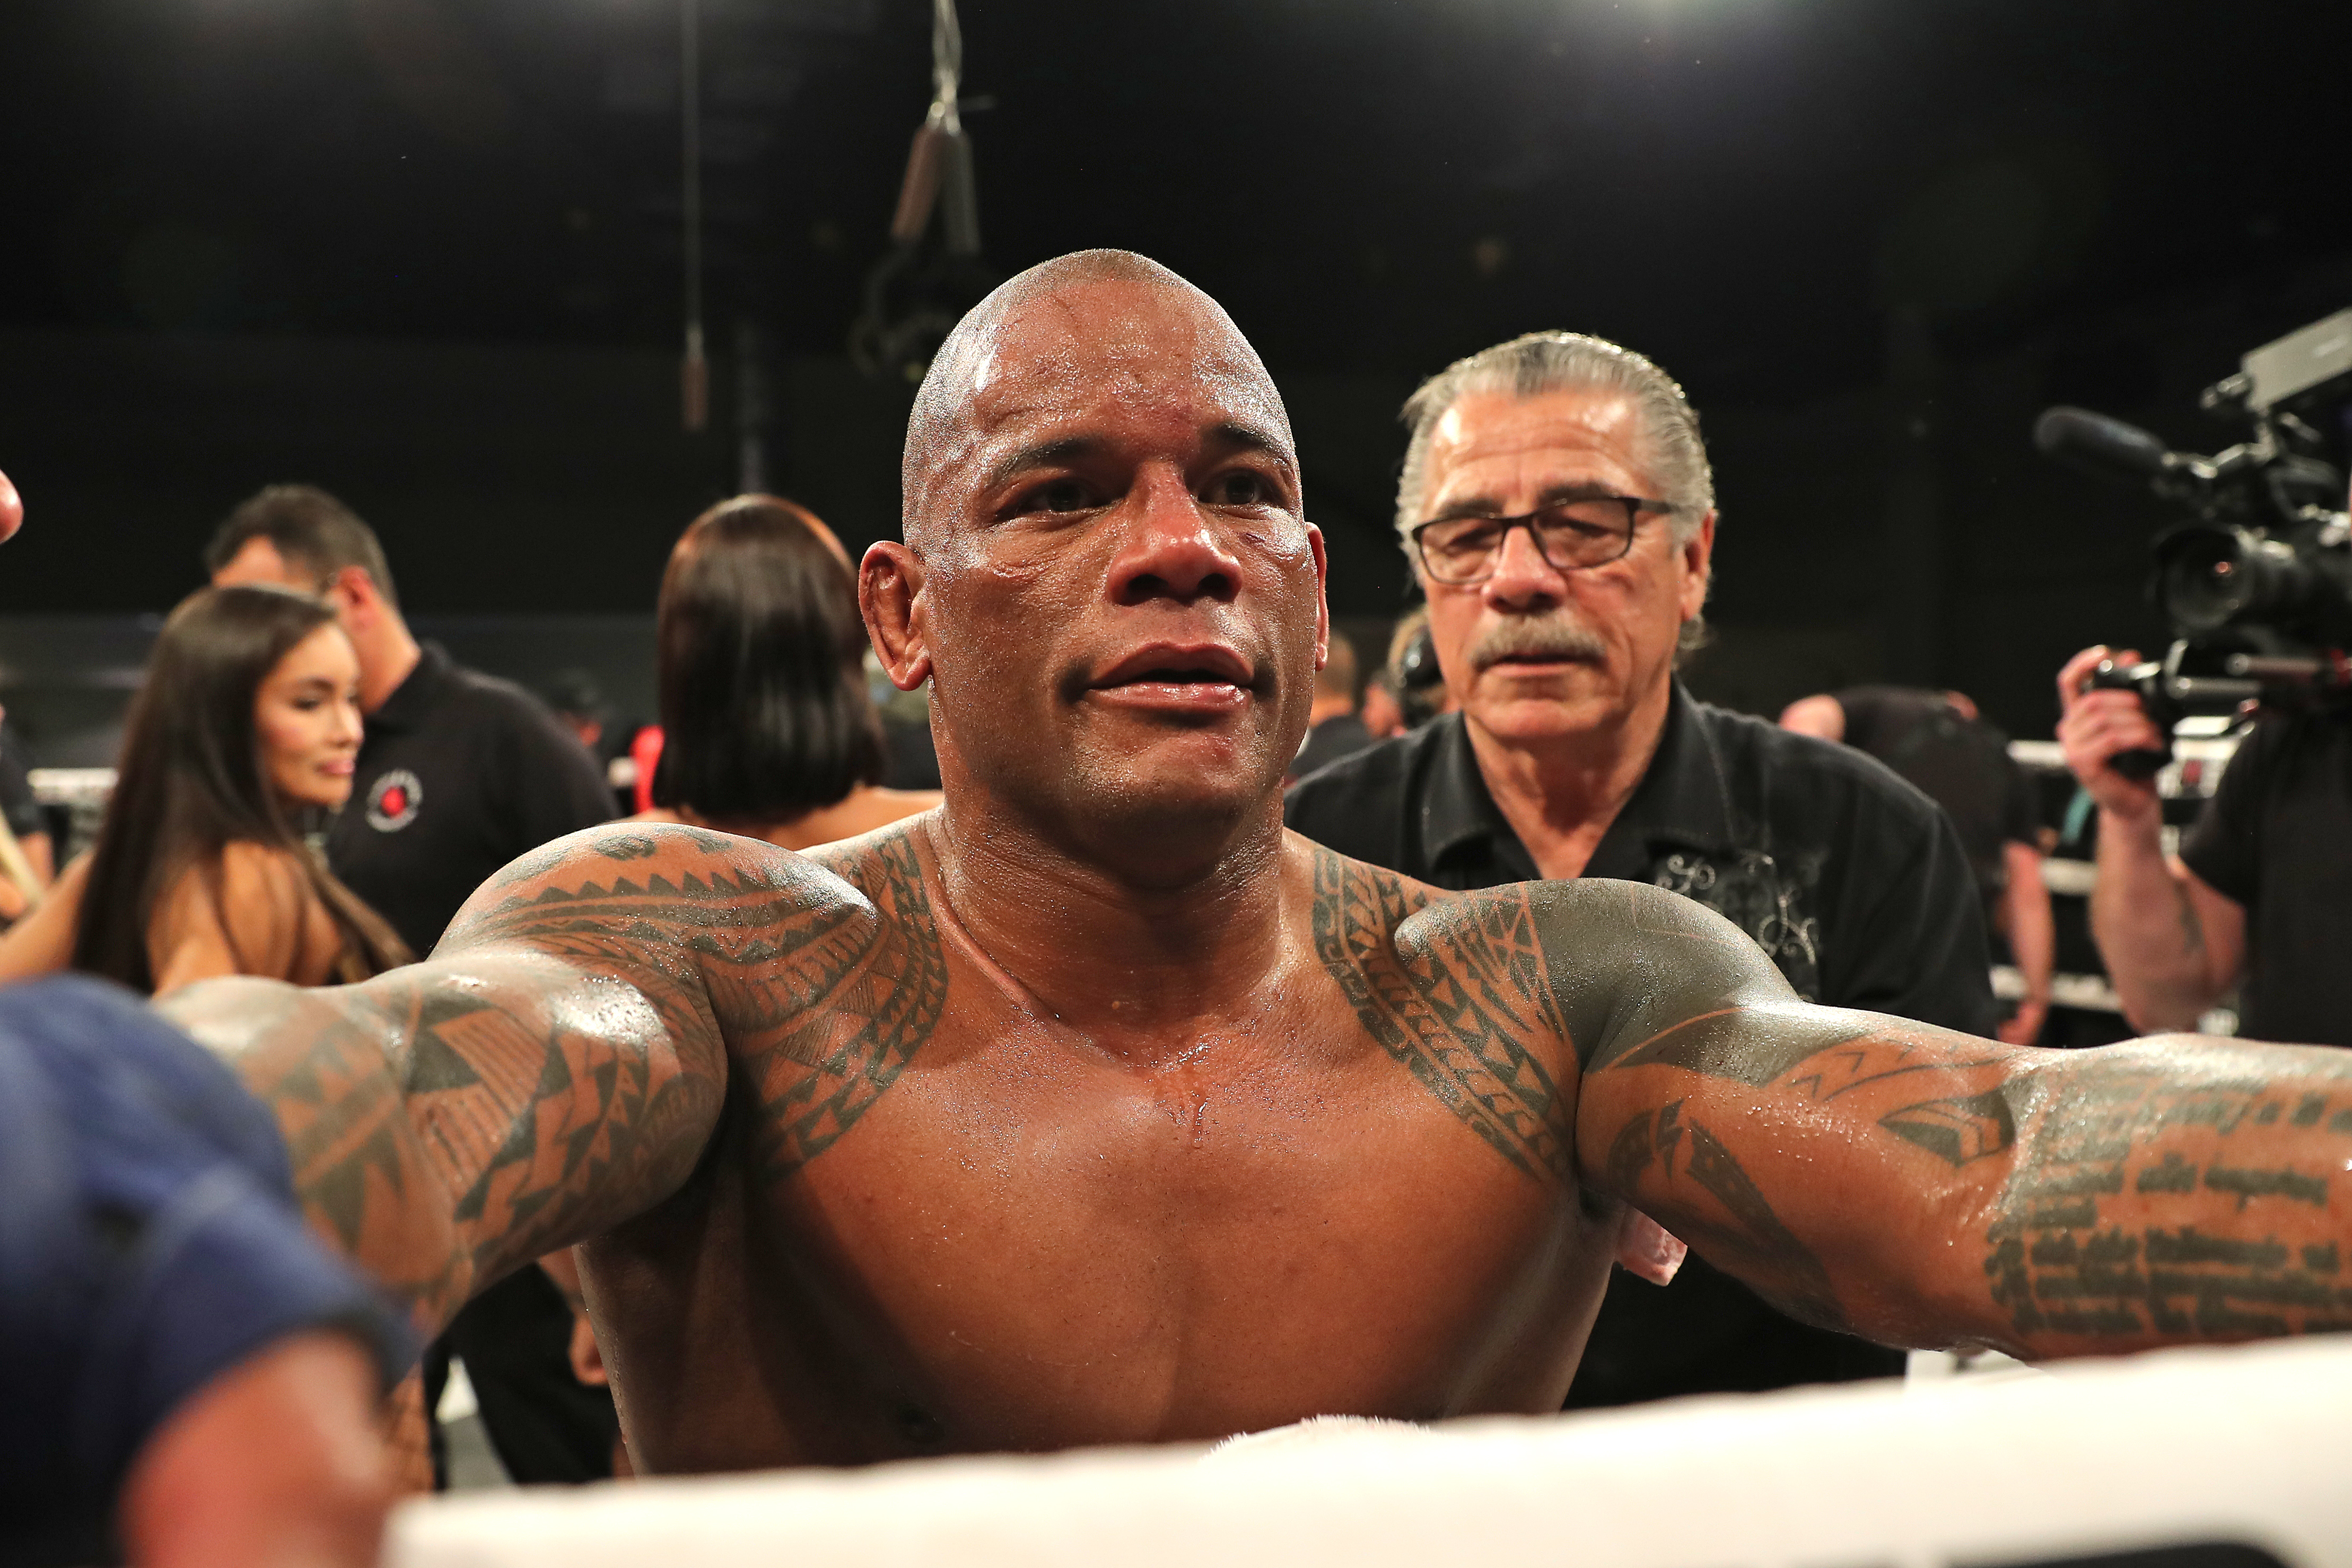 Bare Knuckle Fighting Championship - Hector Lombard vs. David Mundell